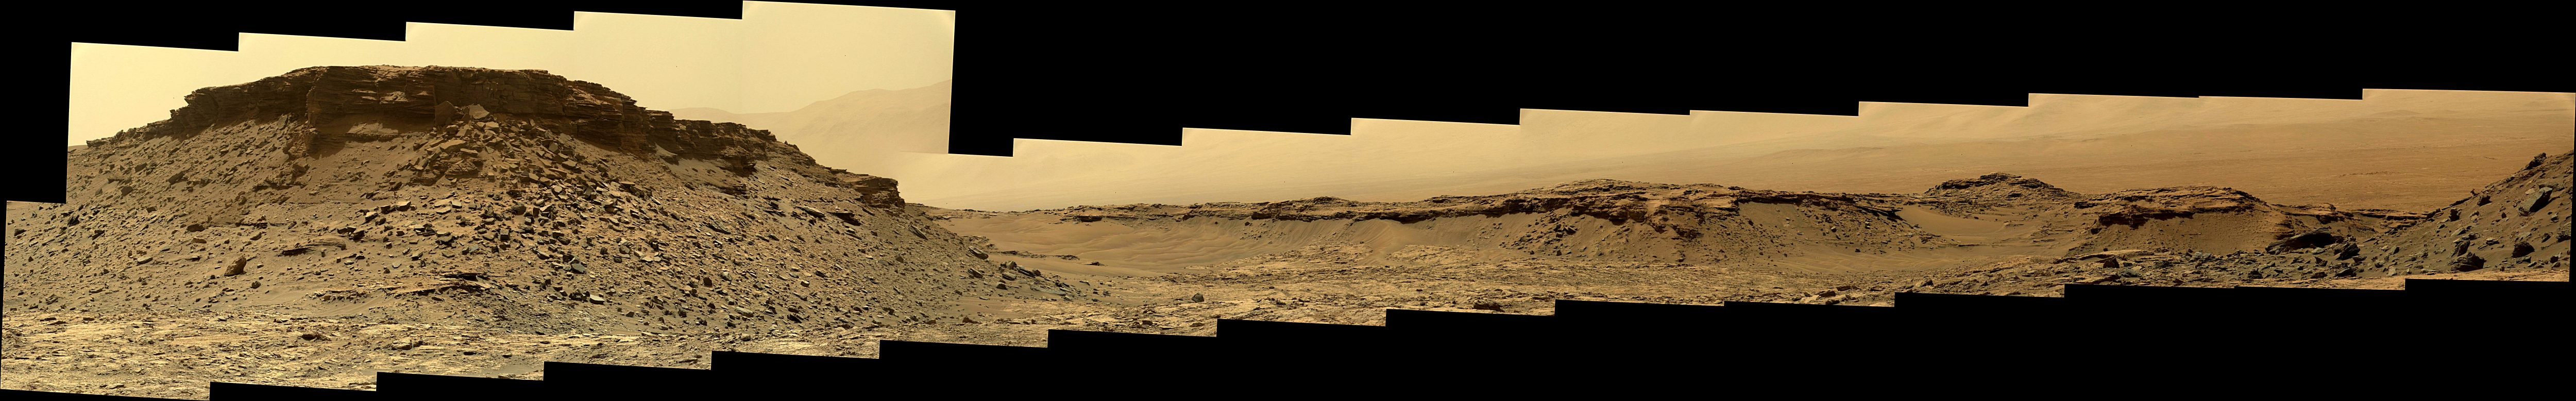 panoramic curiosity rover view 3e - sol 1434 - was life on mars